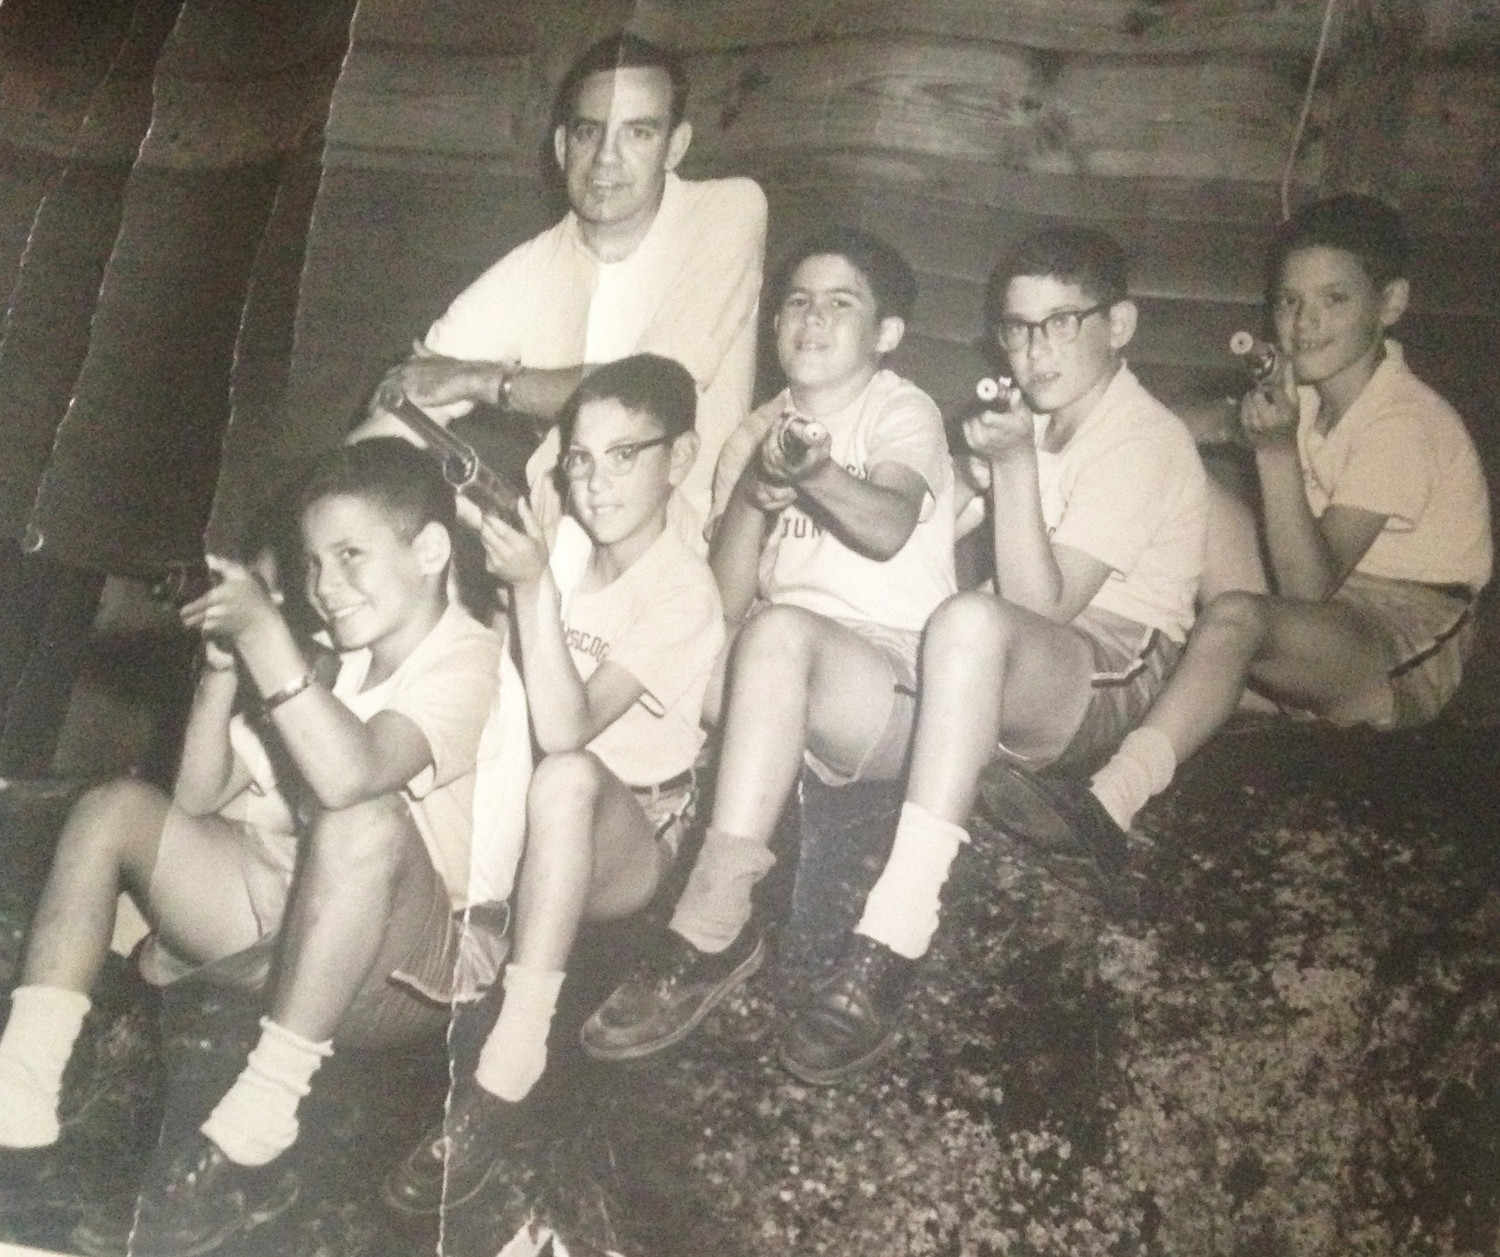 A photo from the summer of 1962 of myself and my bunkmates at Camp Androscoggin Jr.